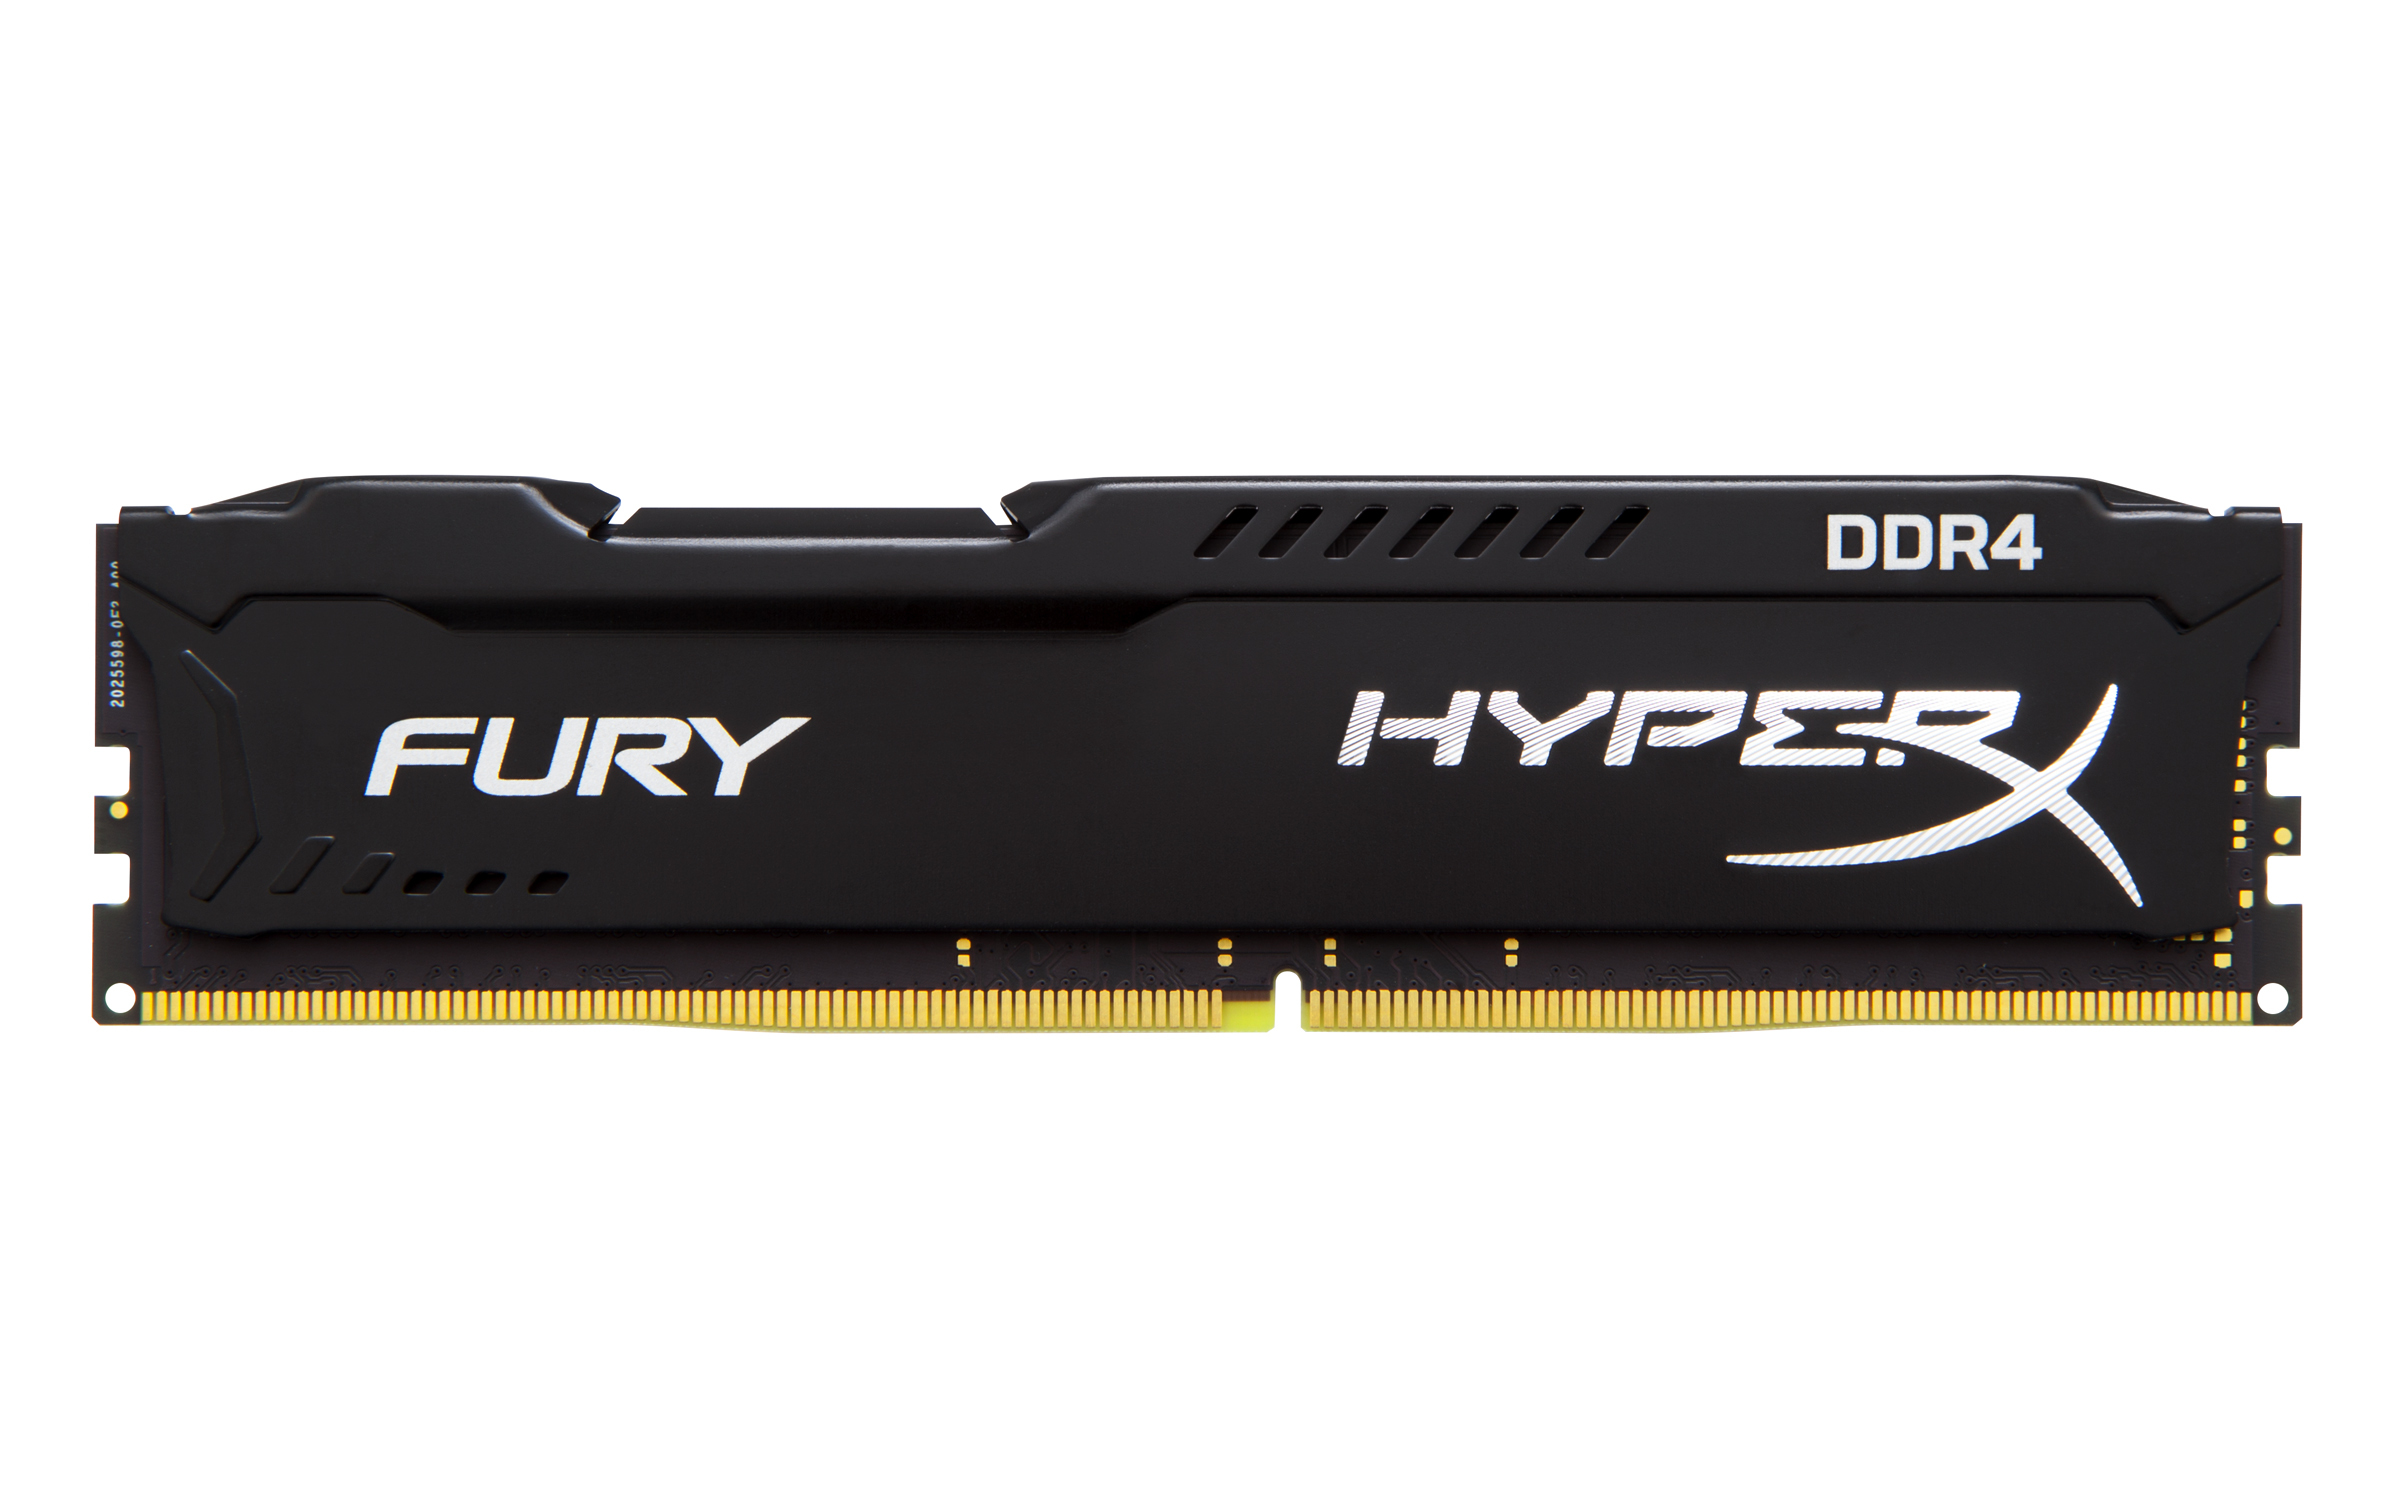 Ram Kingston 8GB 3000Mhz DDR4 CL15 DIMM Savage HyperX